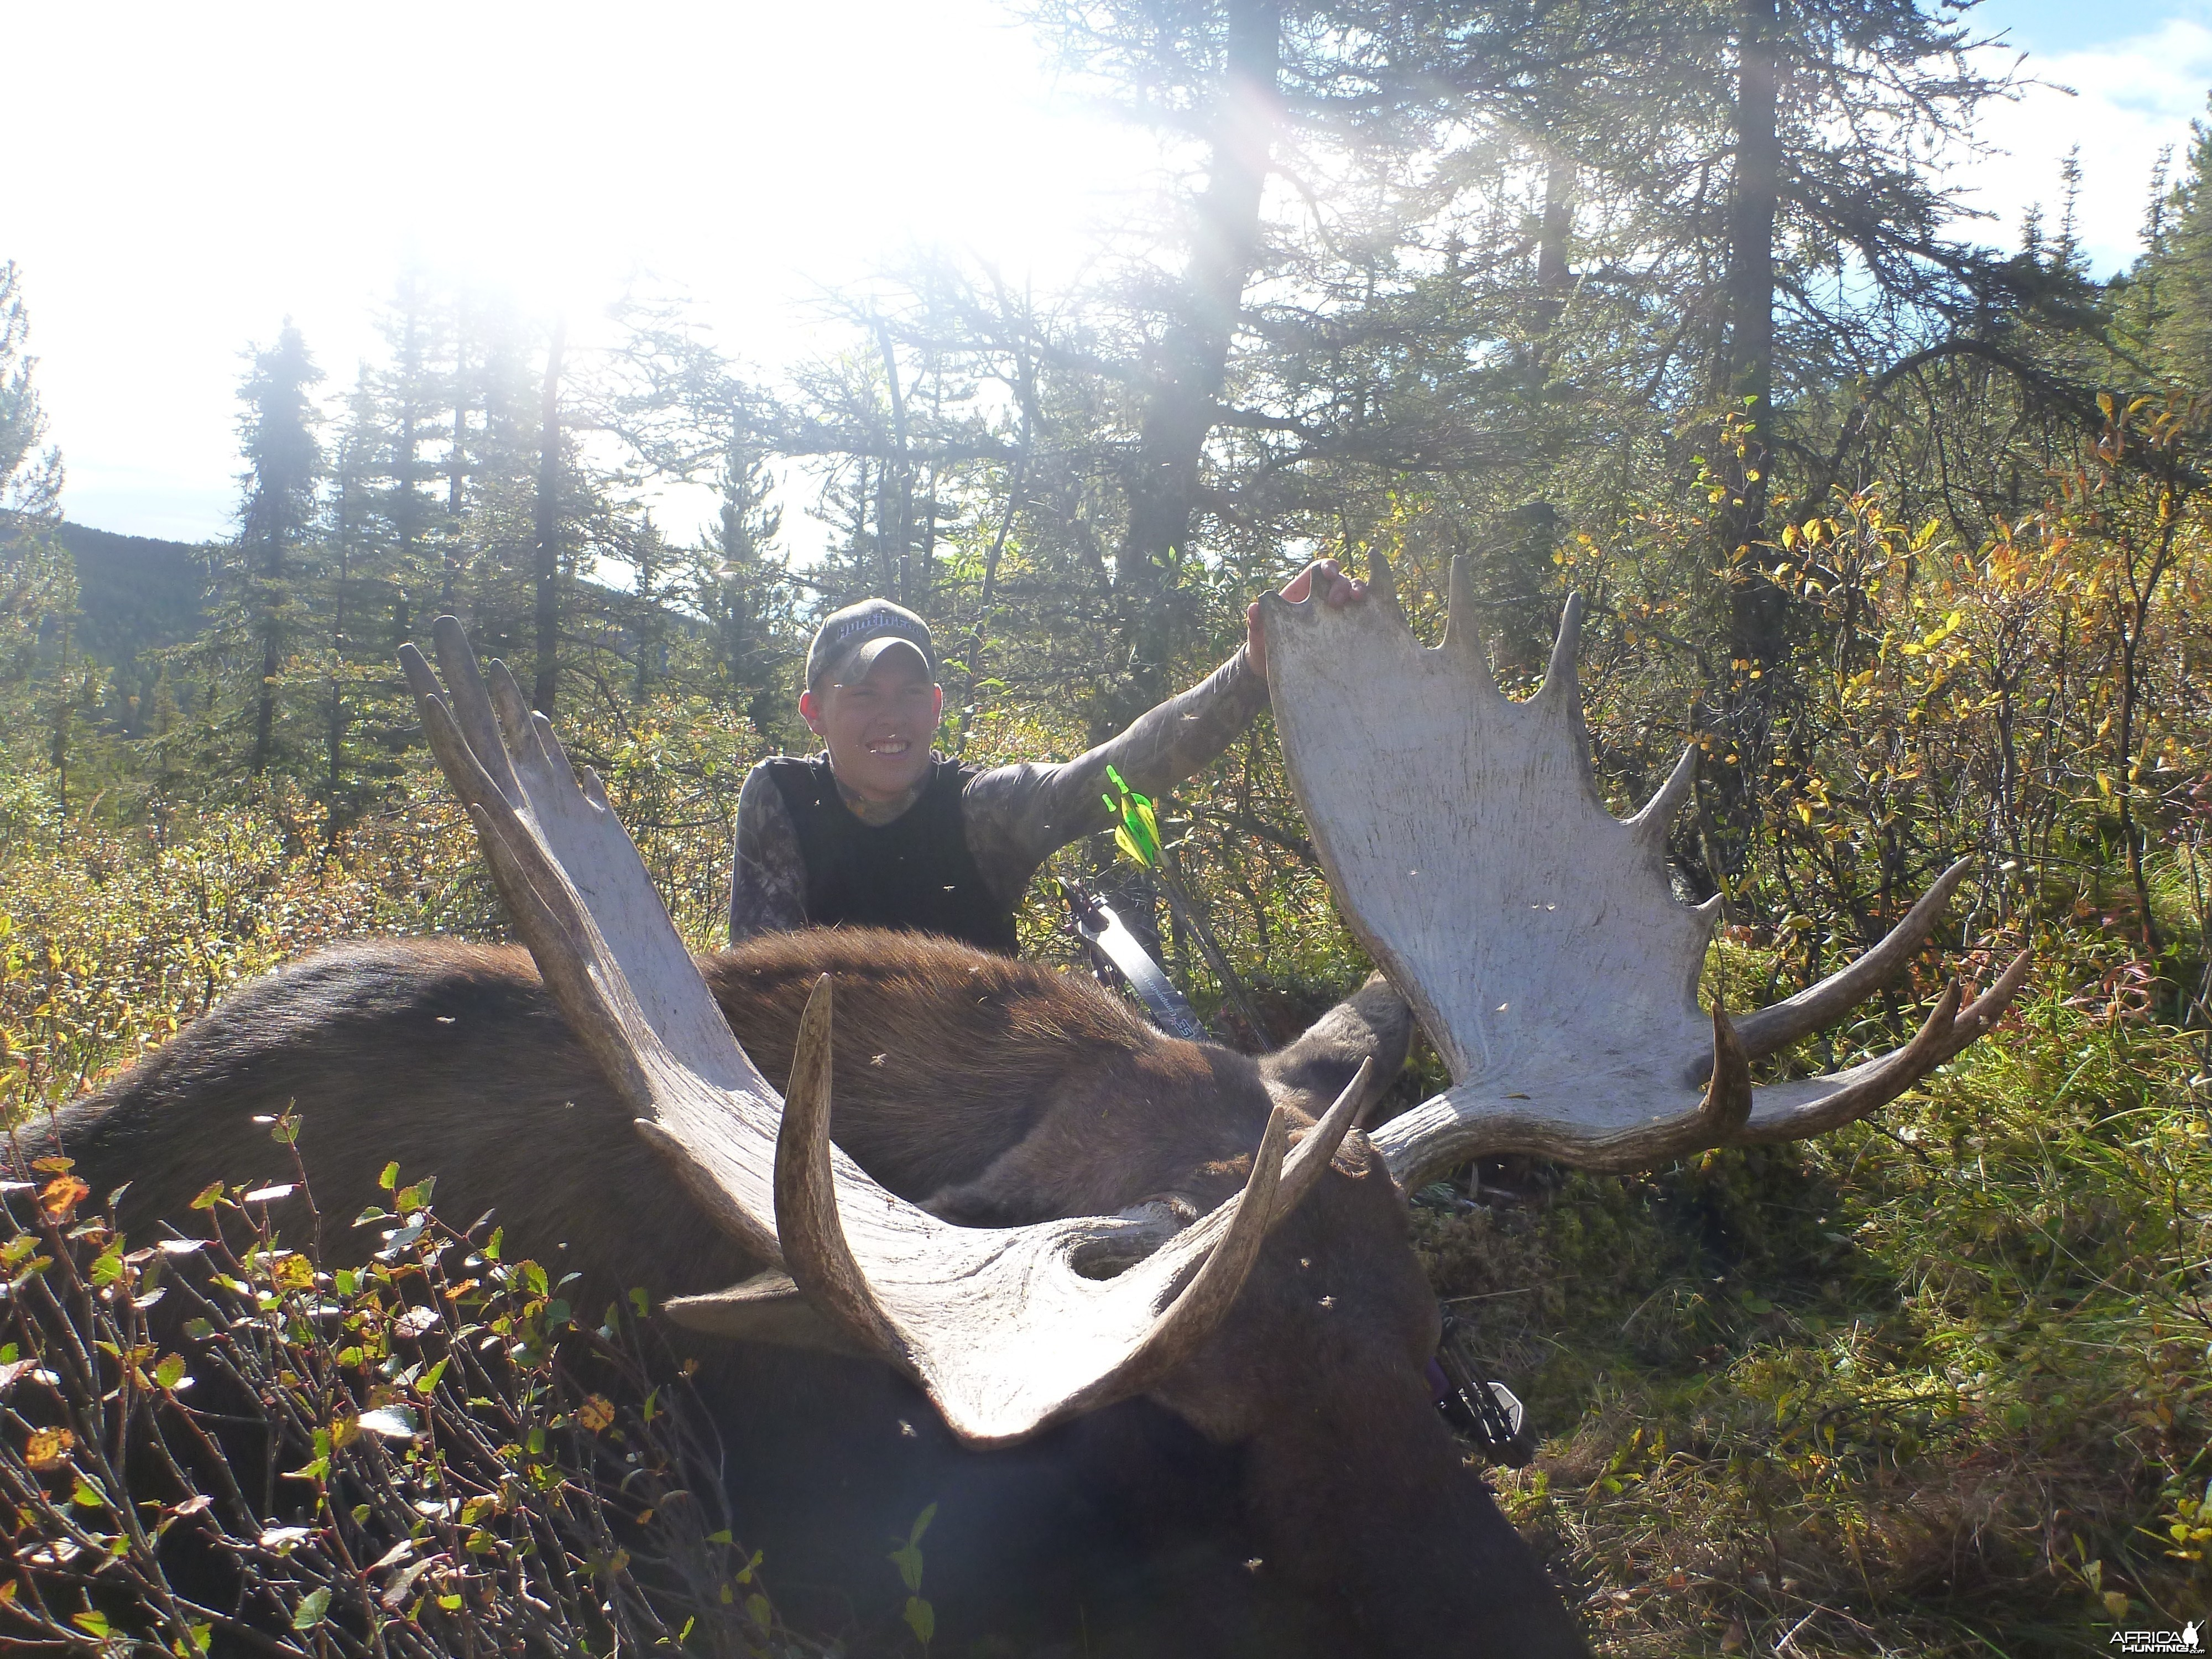 Dakota's British Columbia Moose with a bow